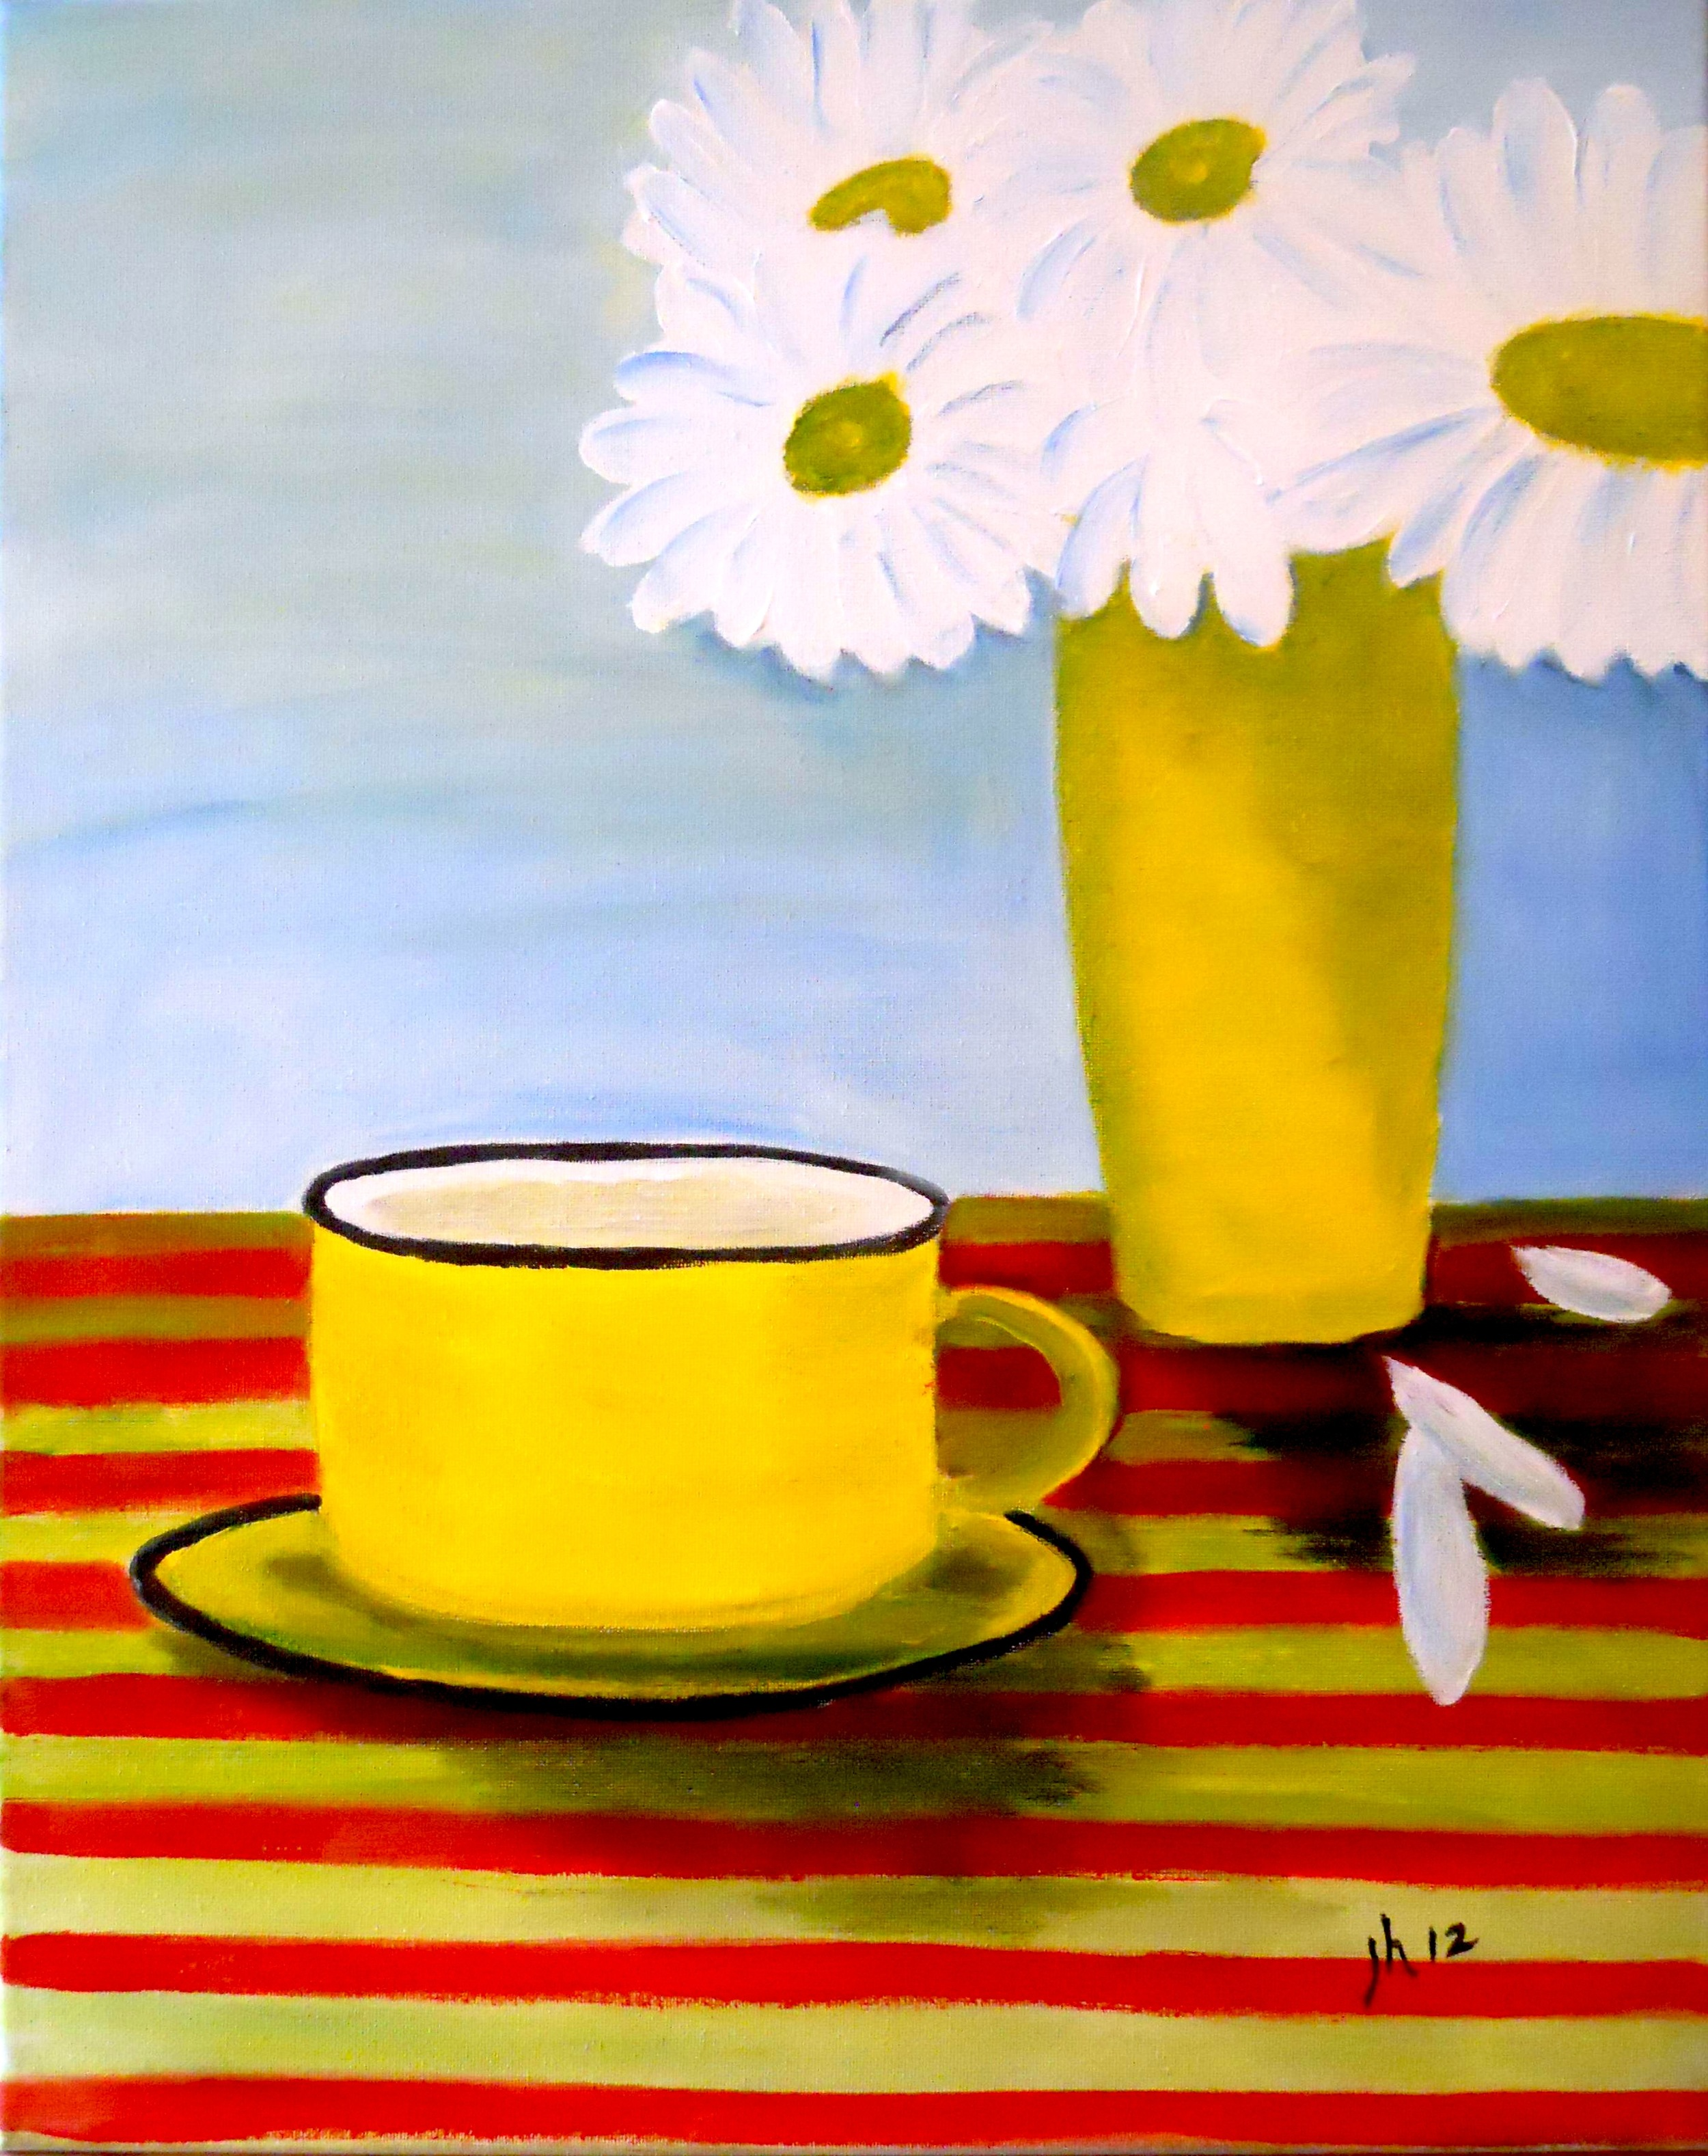 Coffee Cup with Daisies.jpg